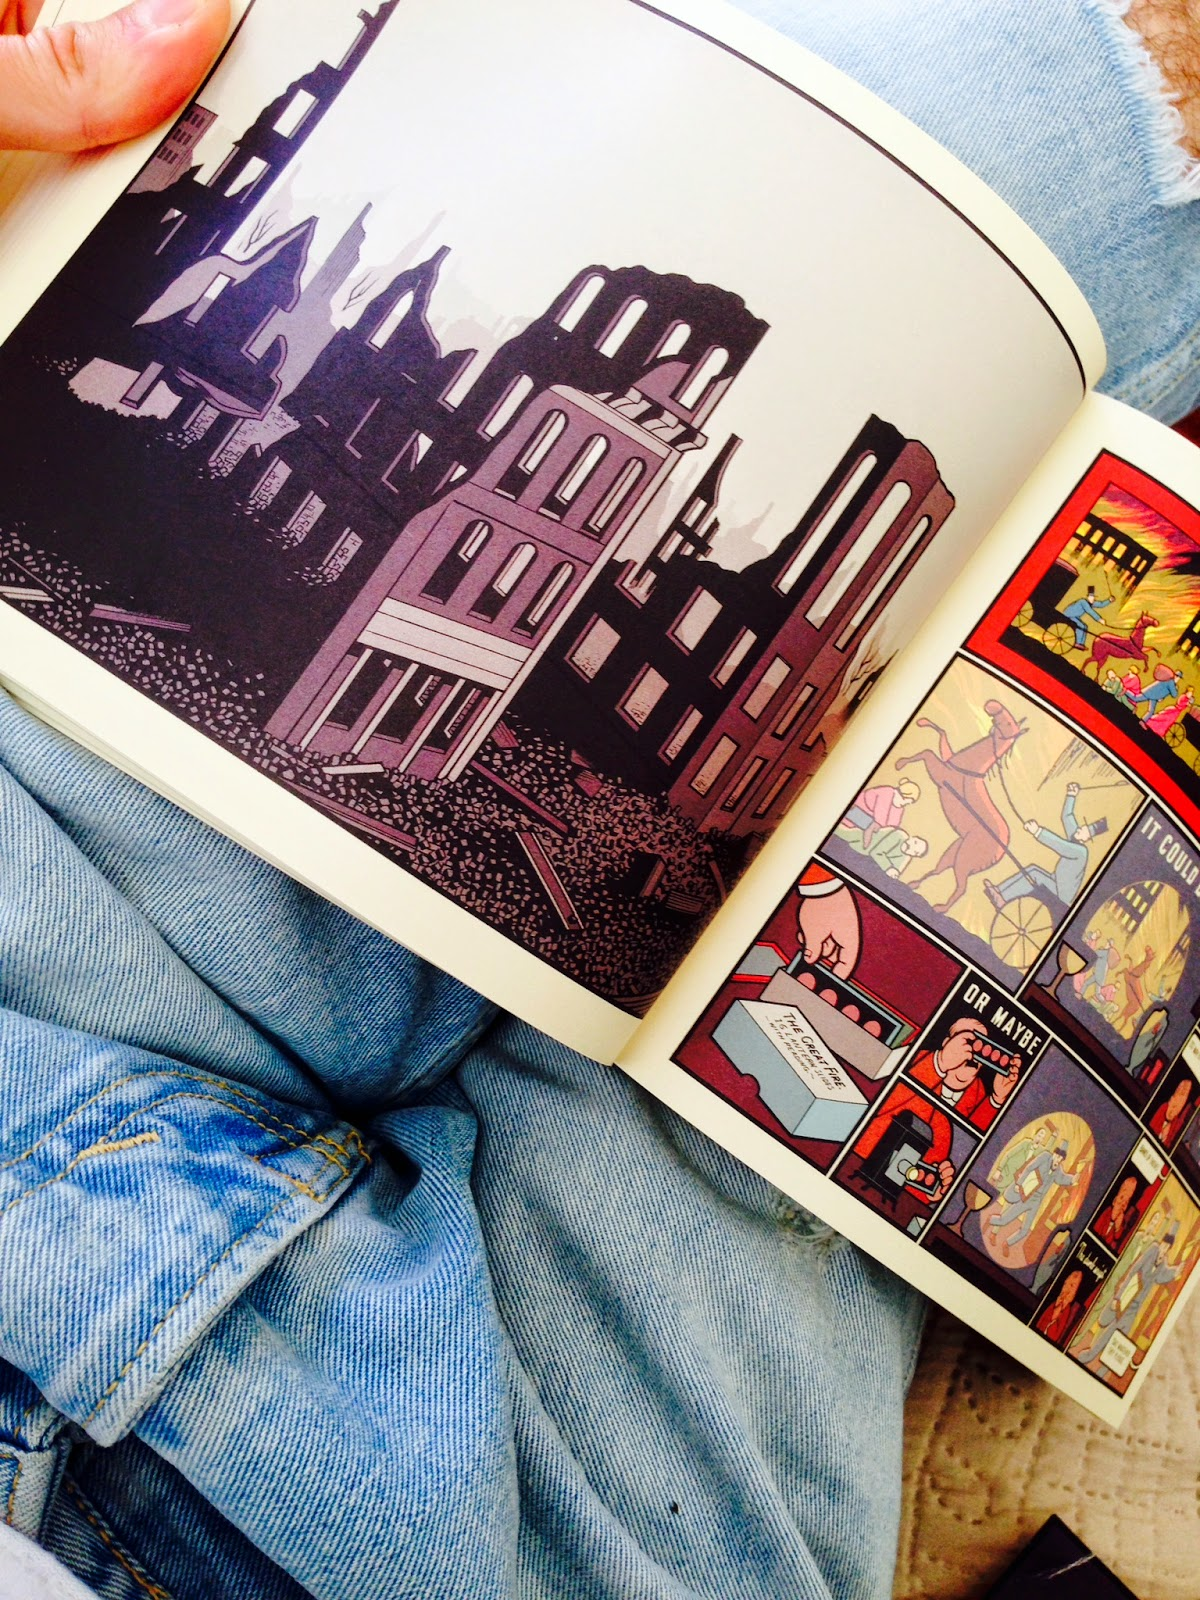 Chris Ware Smartest Kid Earth